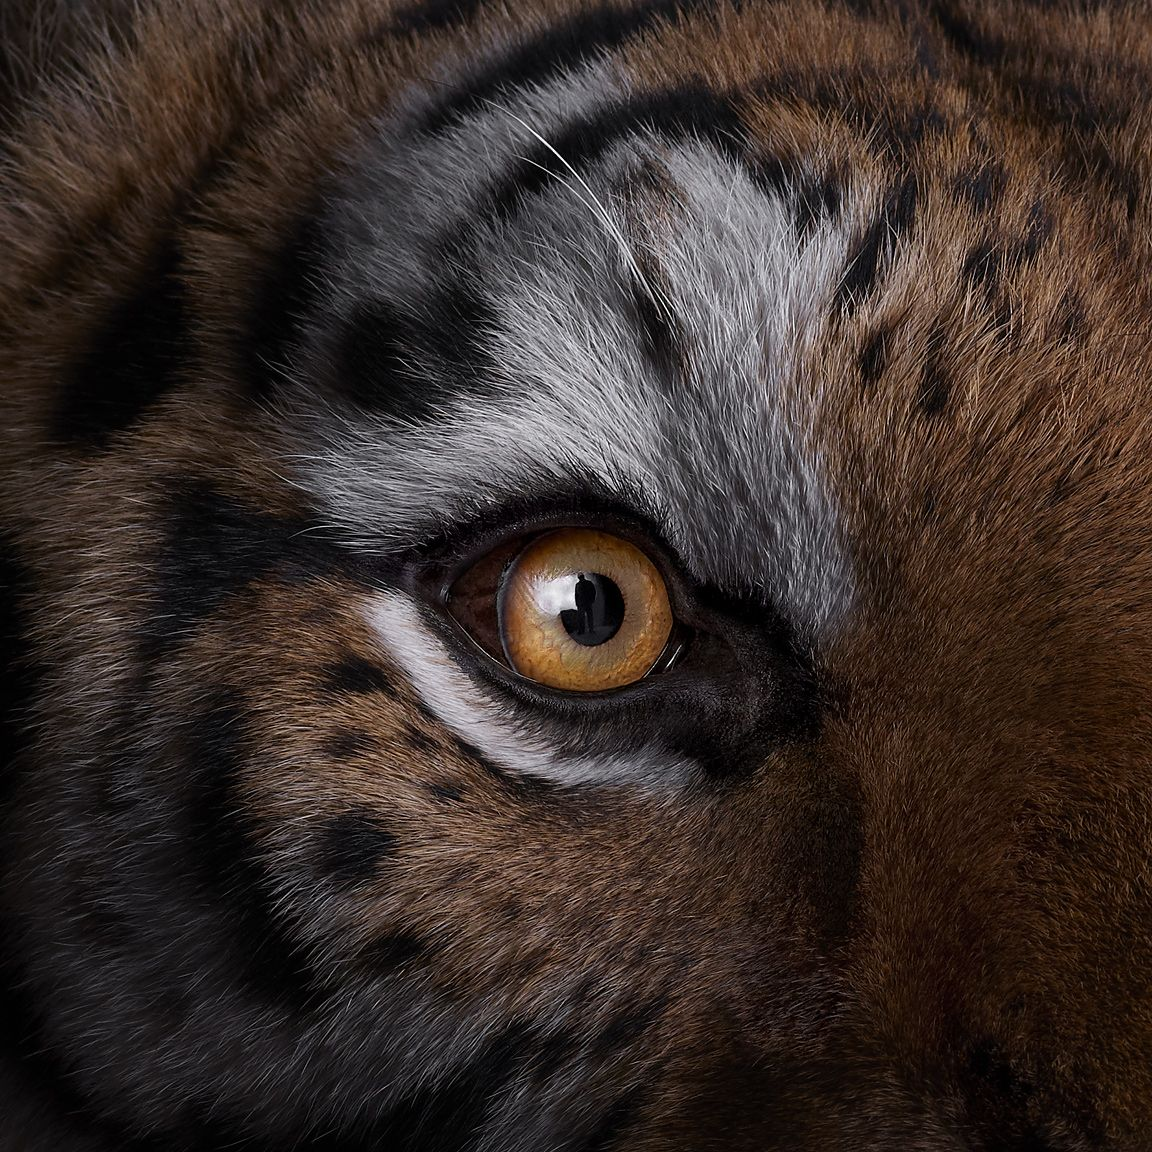 Tiger #9, Los Angeles, California, USA, 2018